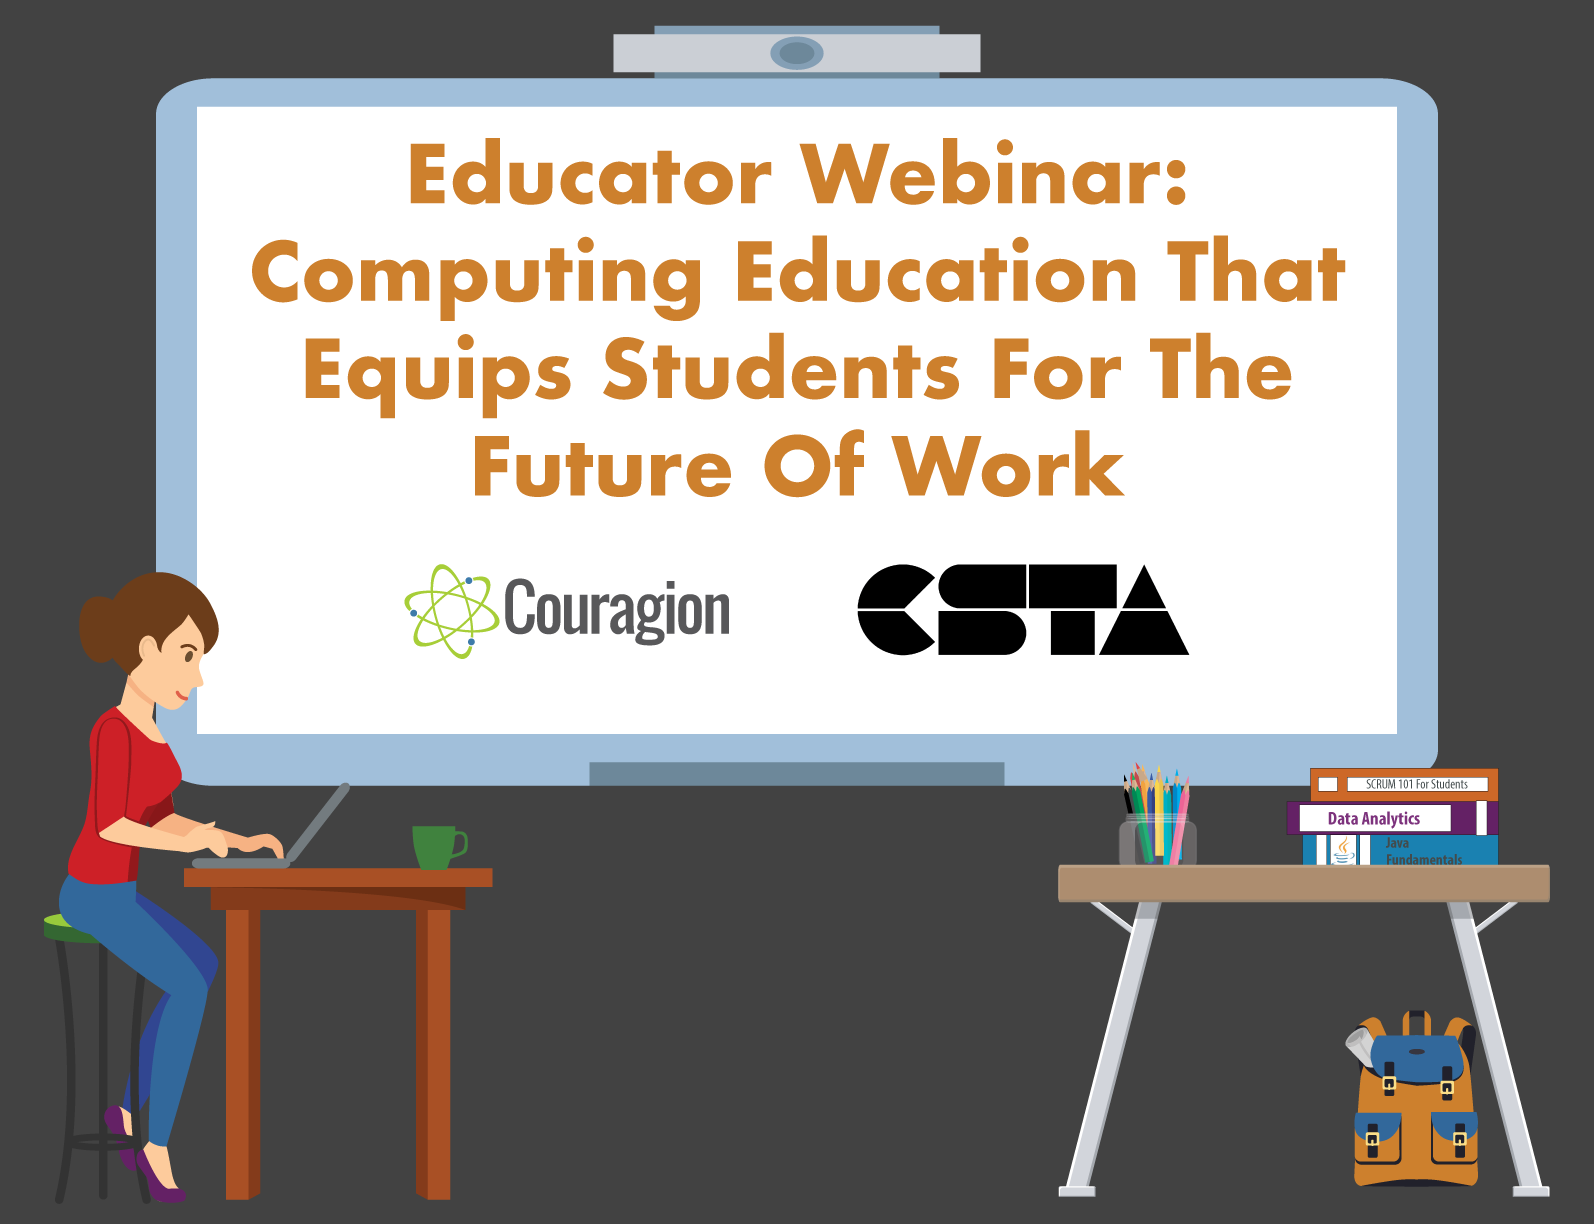 CS Educator Webinar